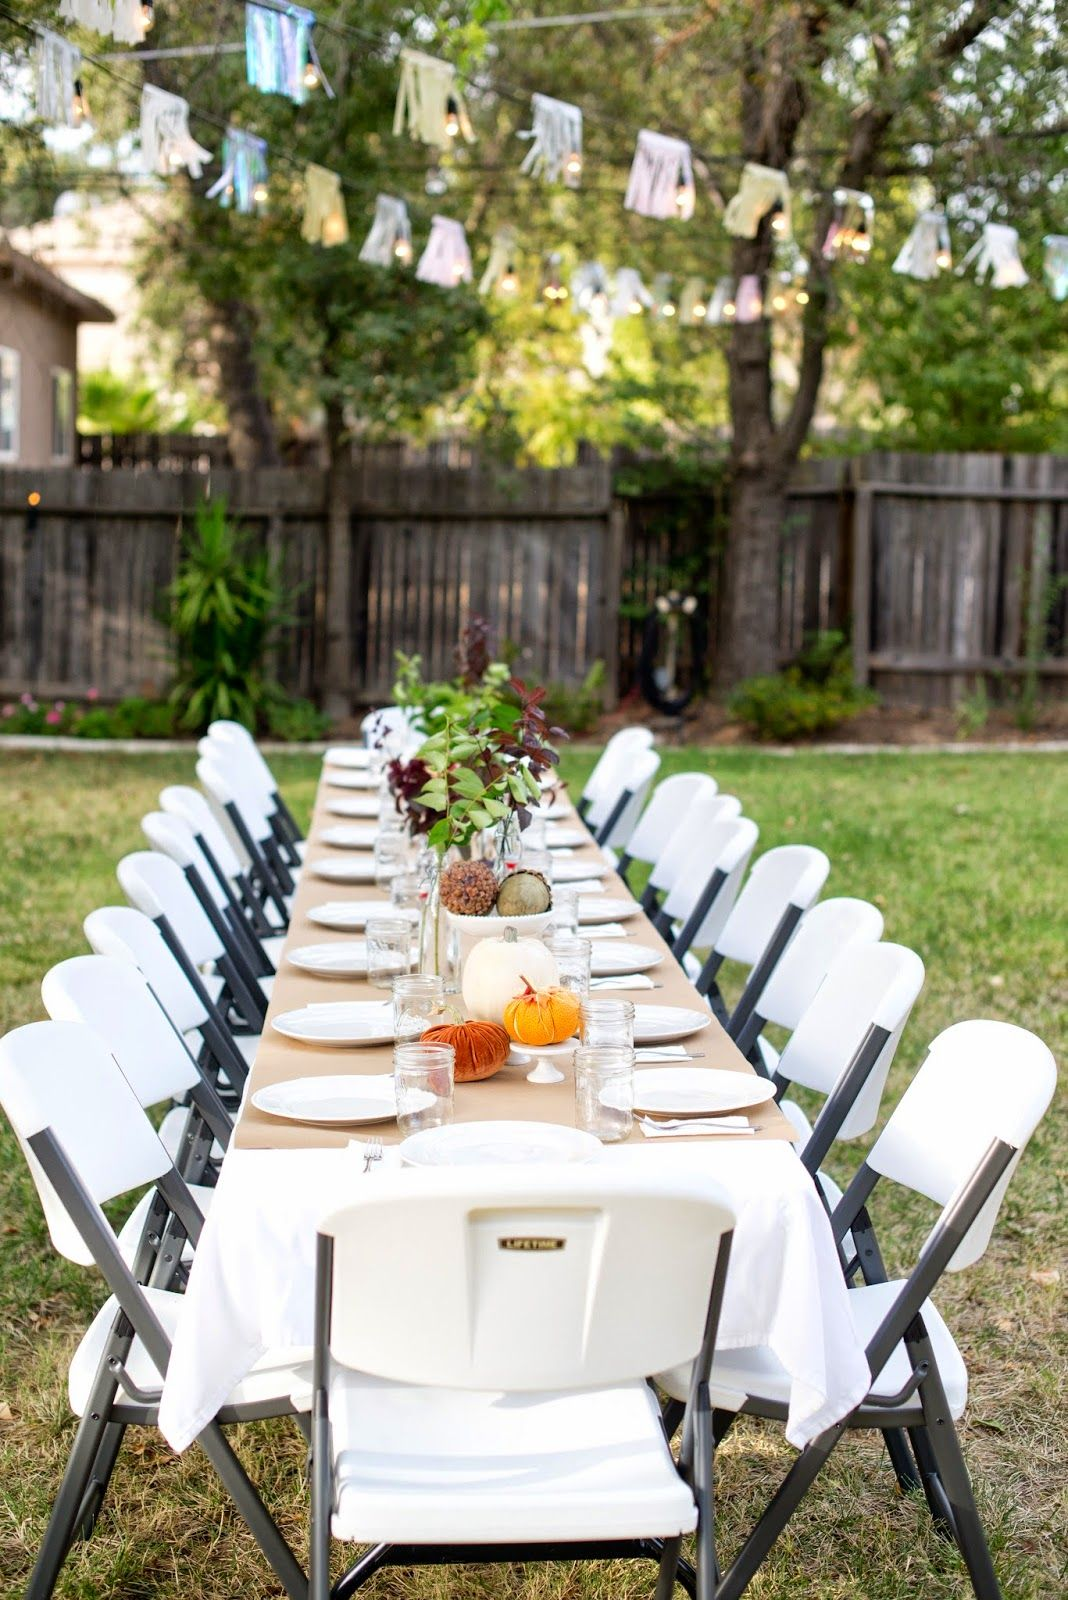 Salient Birthday Party Ideas Domestic Fall Backyard Birthday Party Backyard Party Decorating Ideas Pinterest Summer Backyard Party Ideas Pinterest outdoor Backyard Party Ideas Pinterest